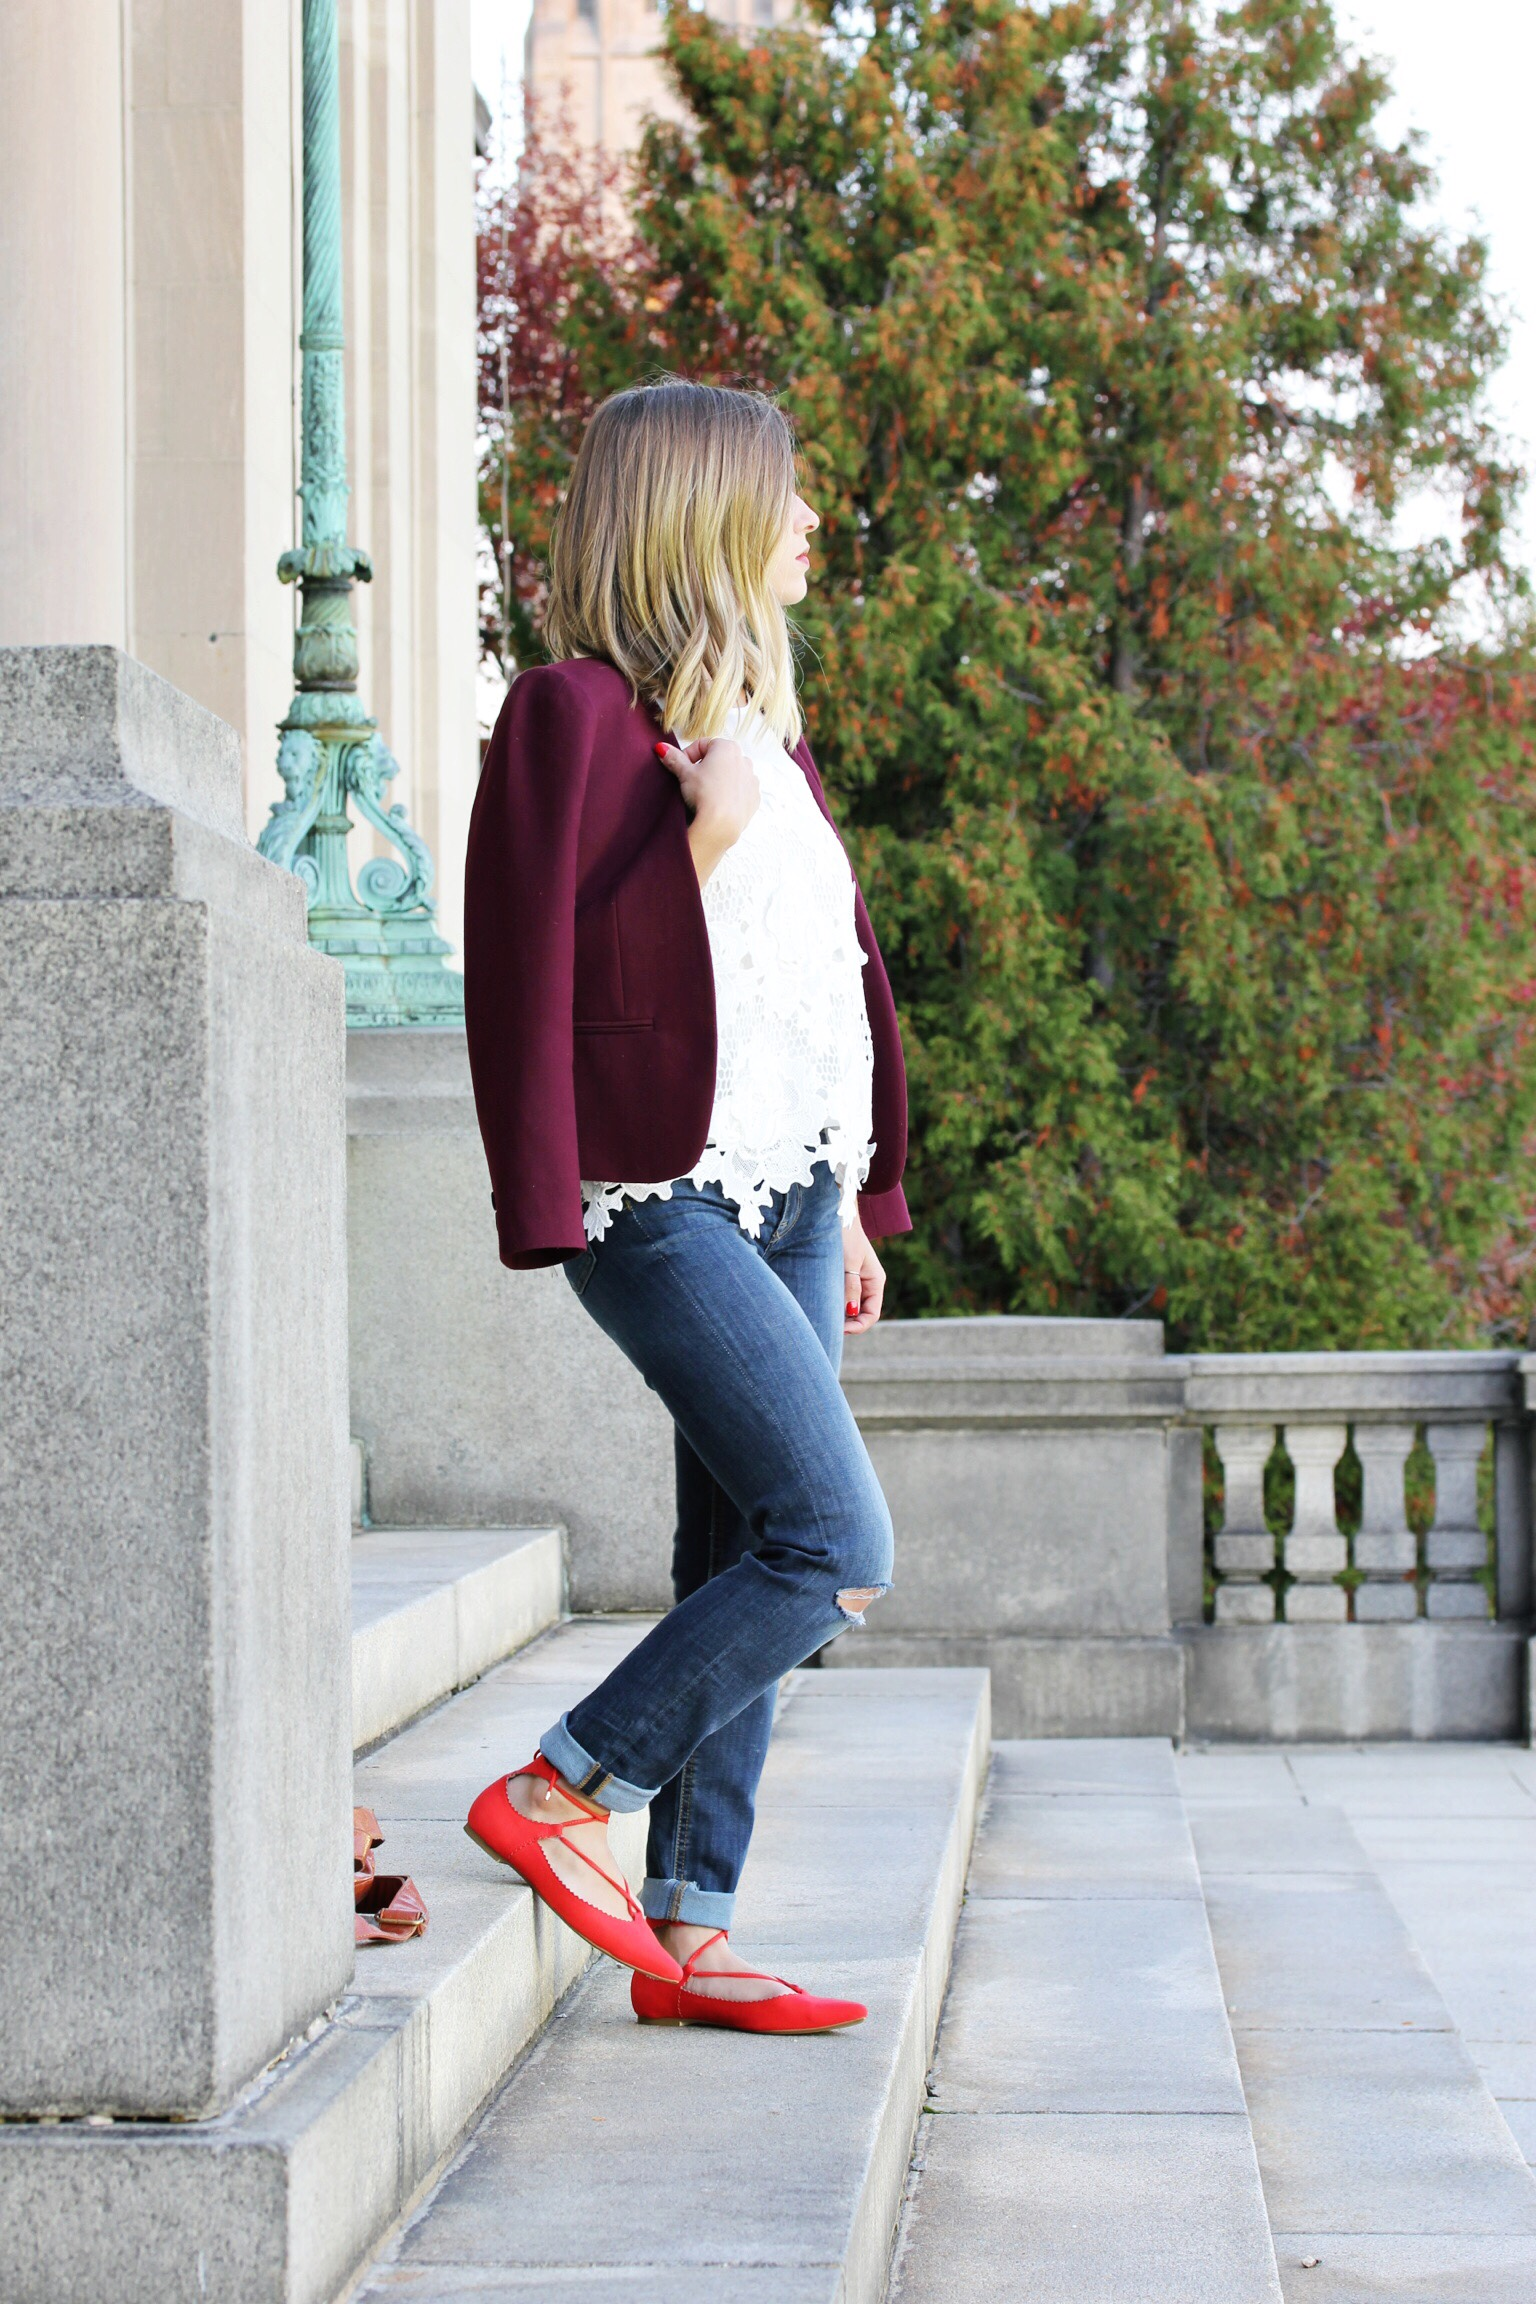 Lace and lace ups - The Pastiche